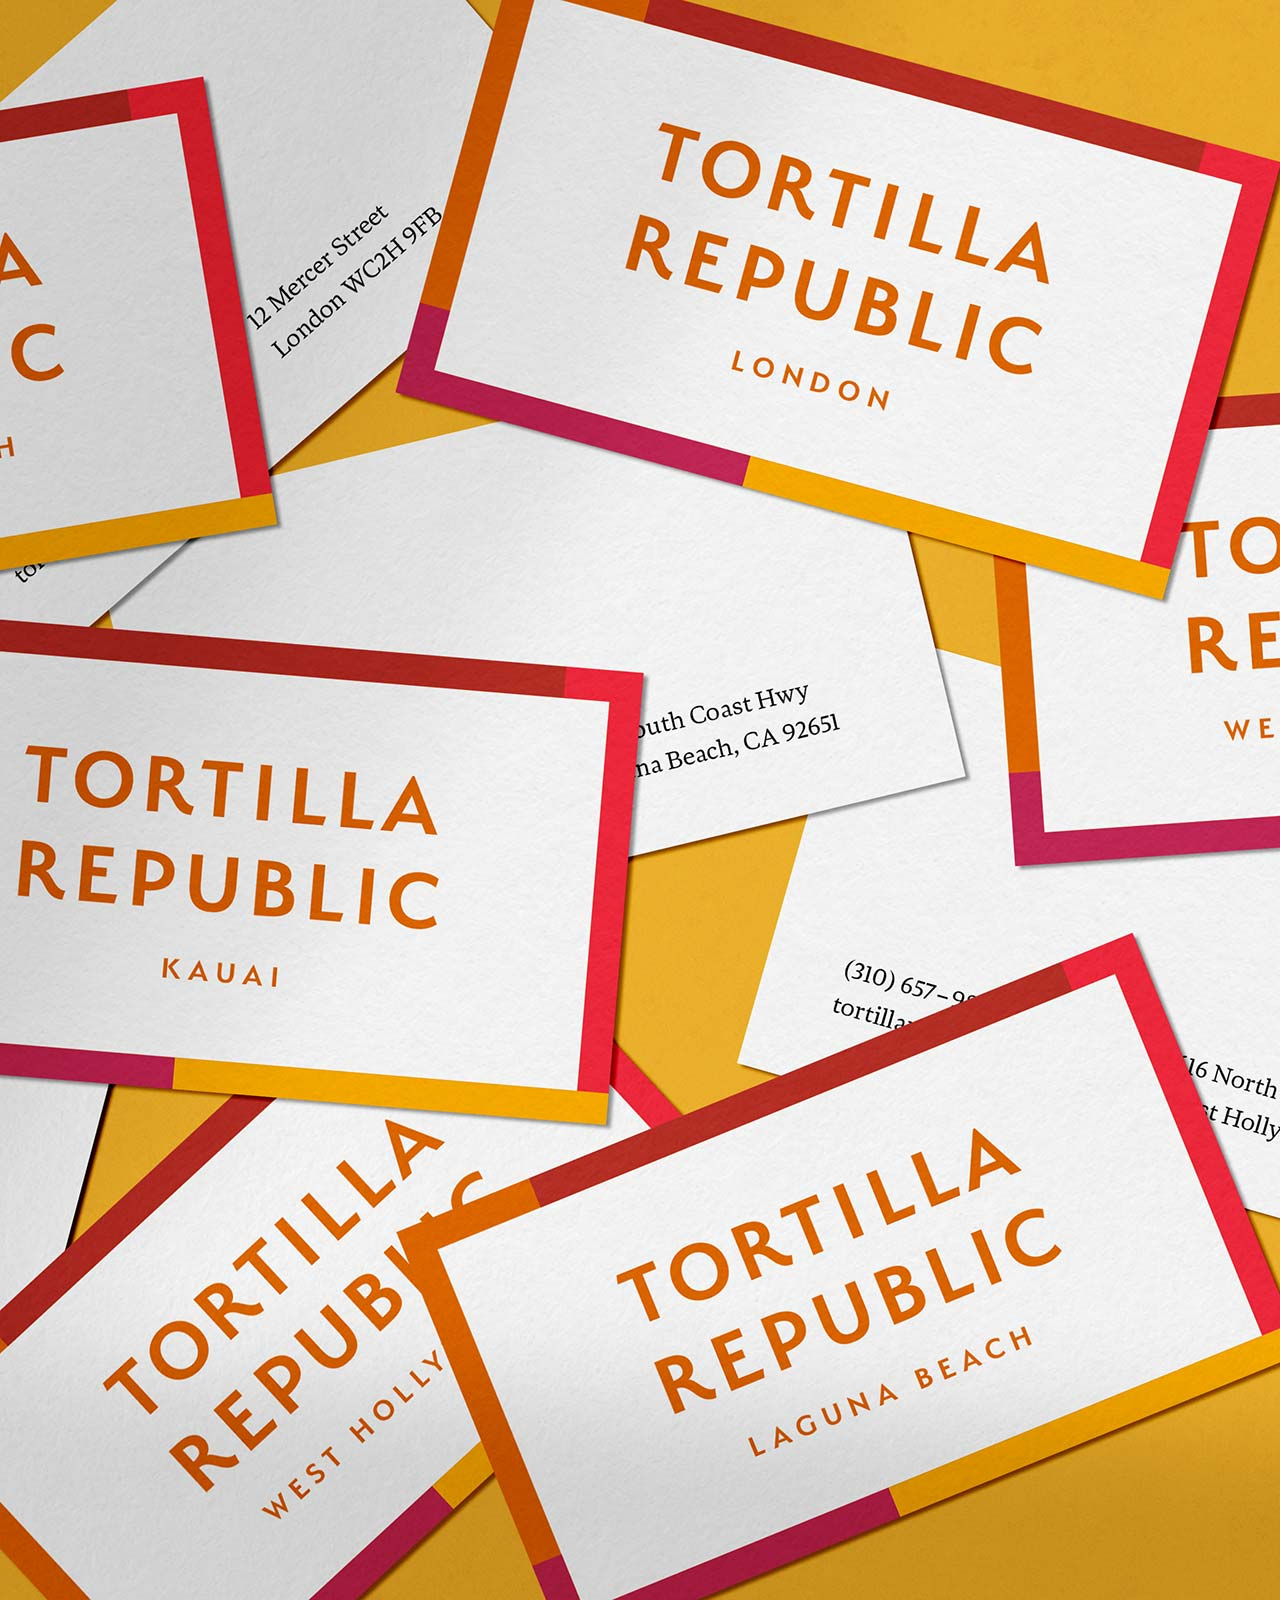 Tortilla Republic business cards with colored border scattered on yellow background